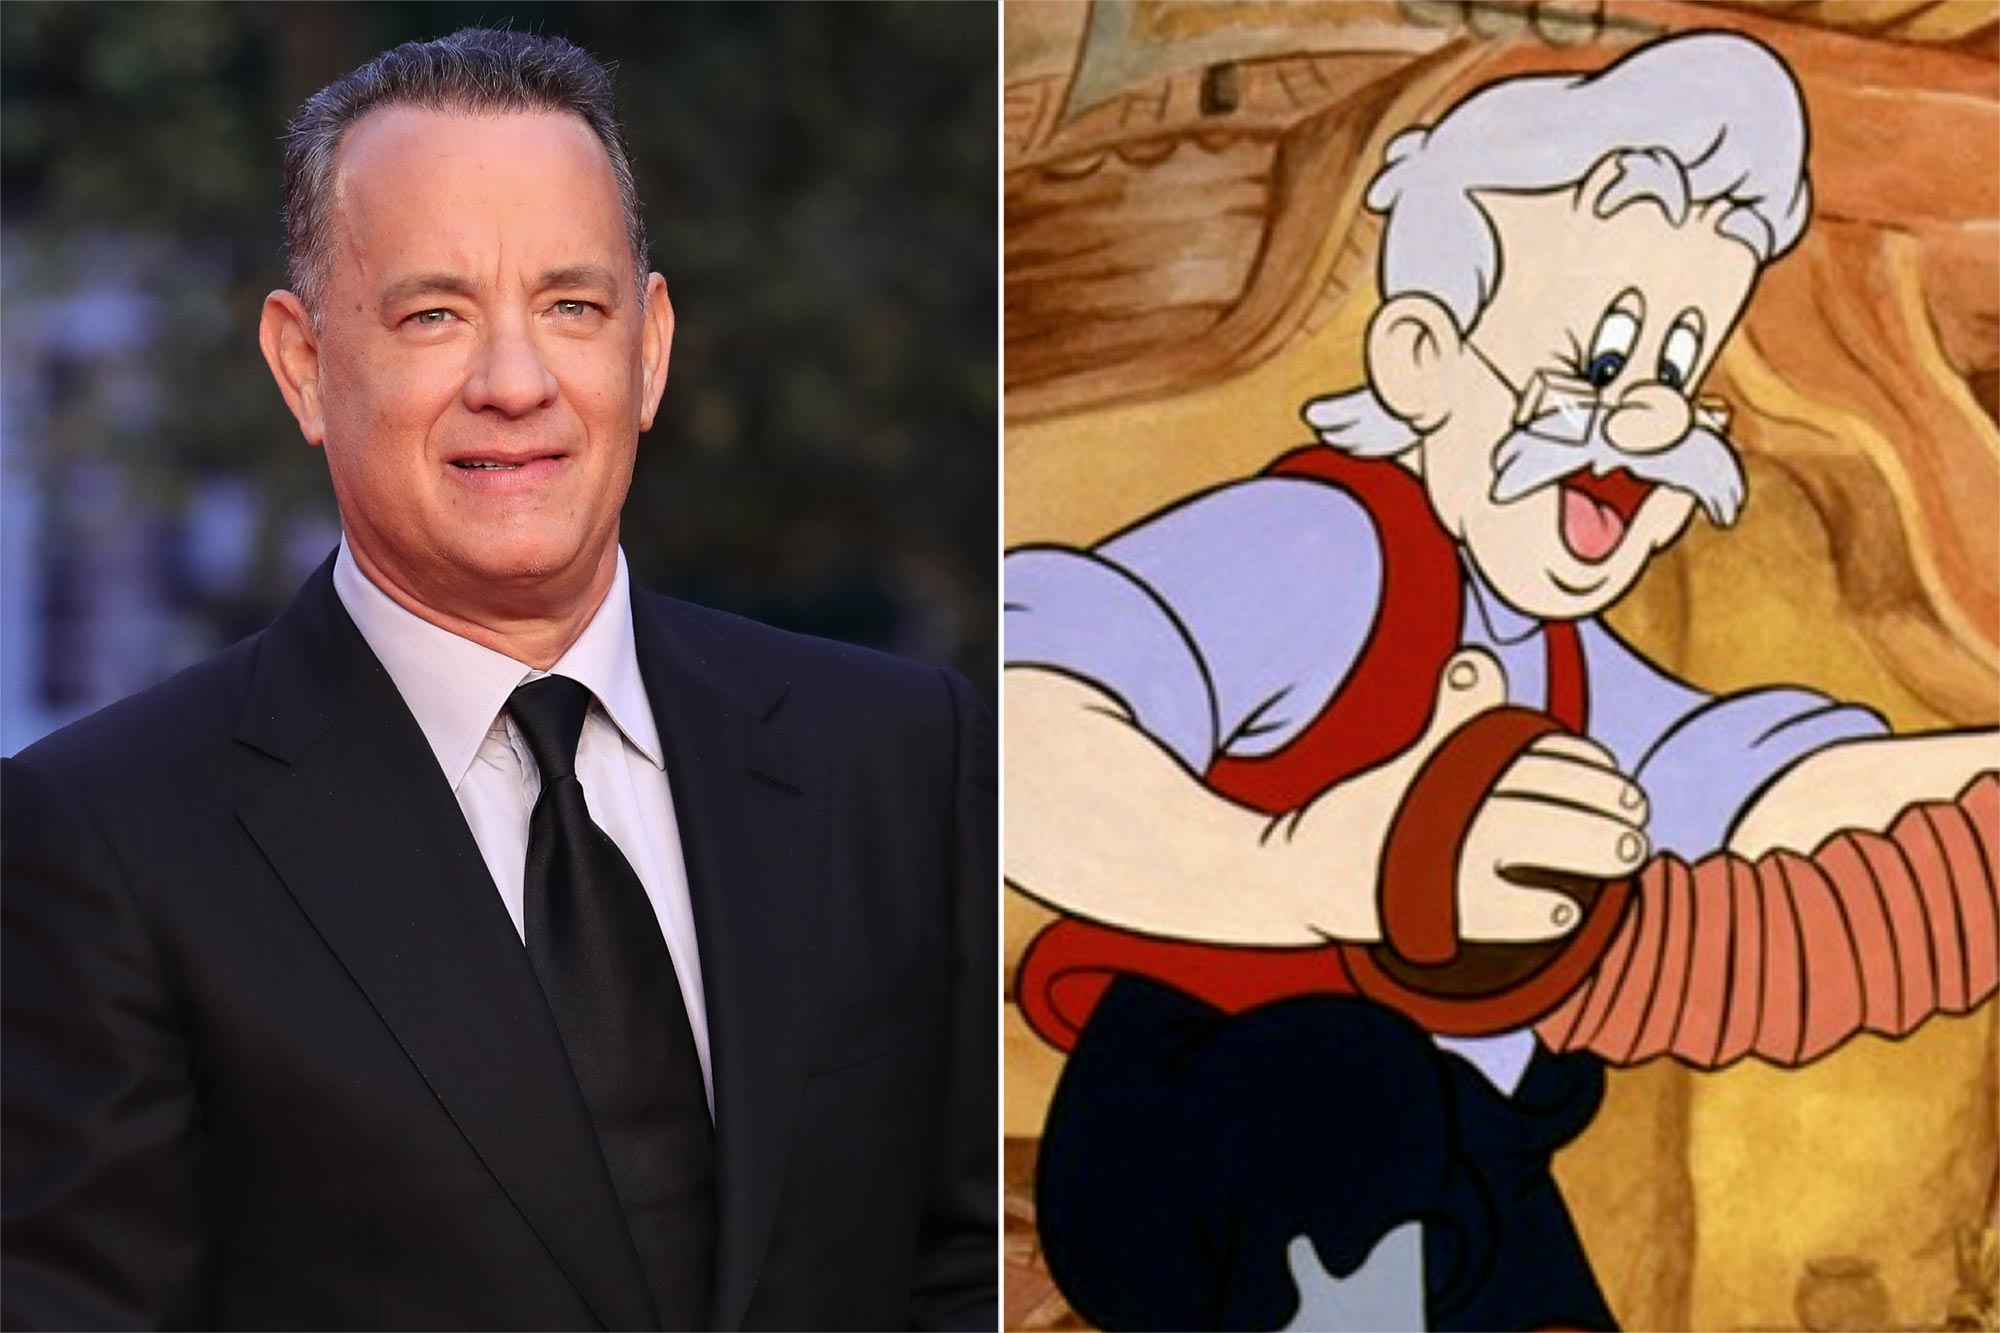 Tom Hanks as Geppetto